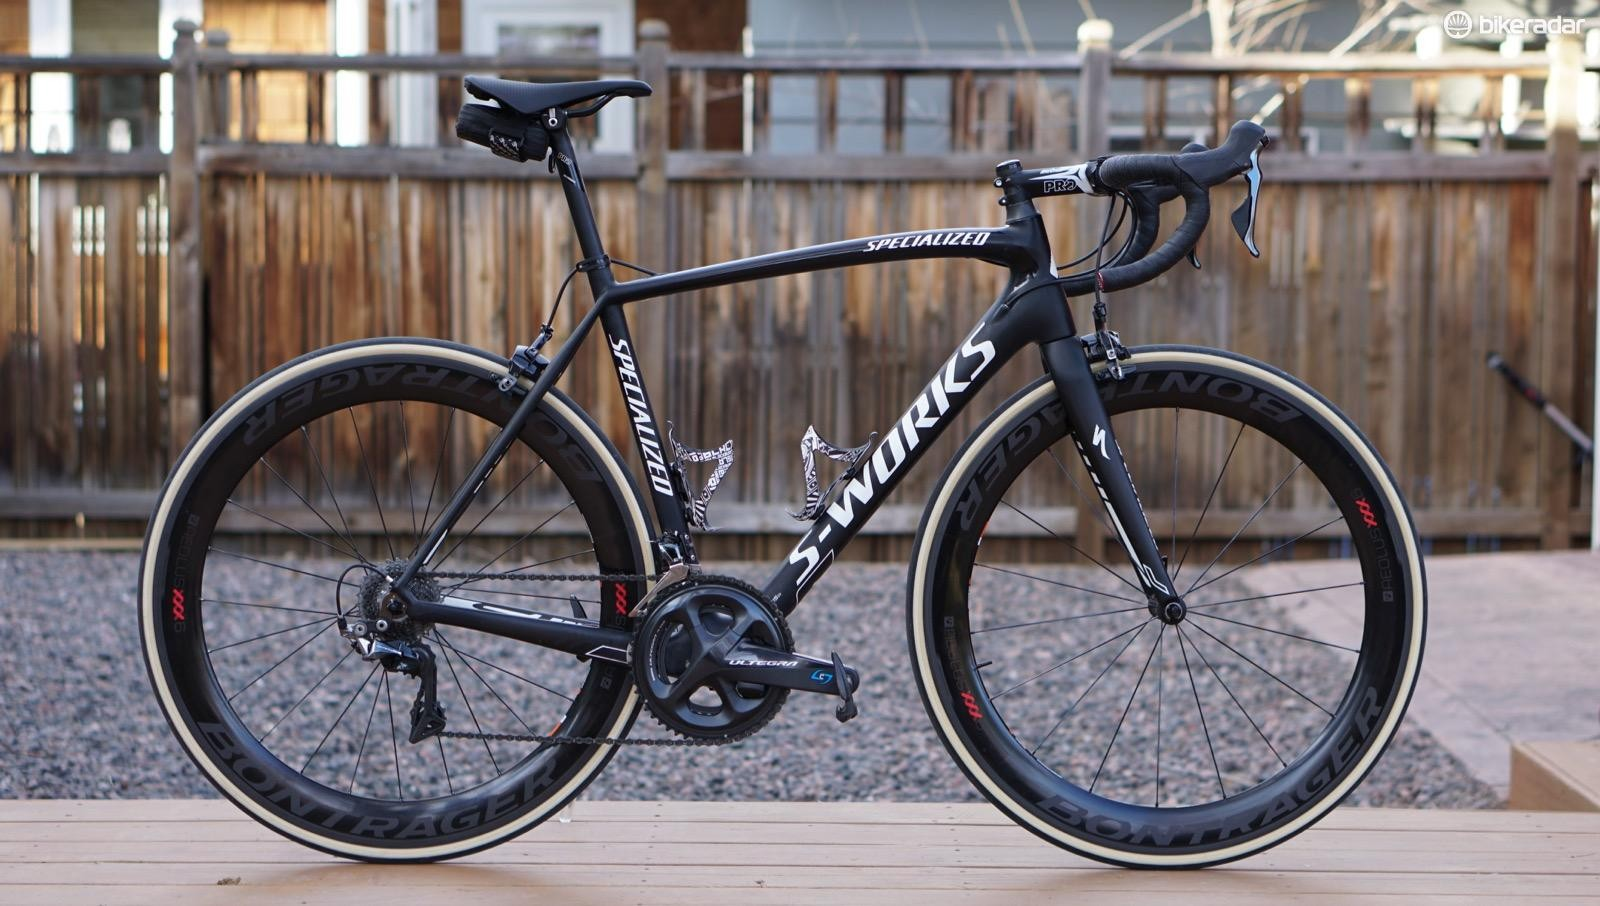 I tested the Aeolus XXX 6 on two bikes, including this ~2012 Specialized Tarmac